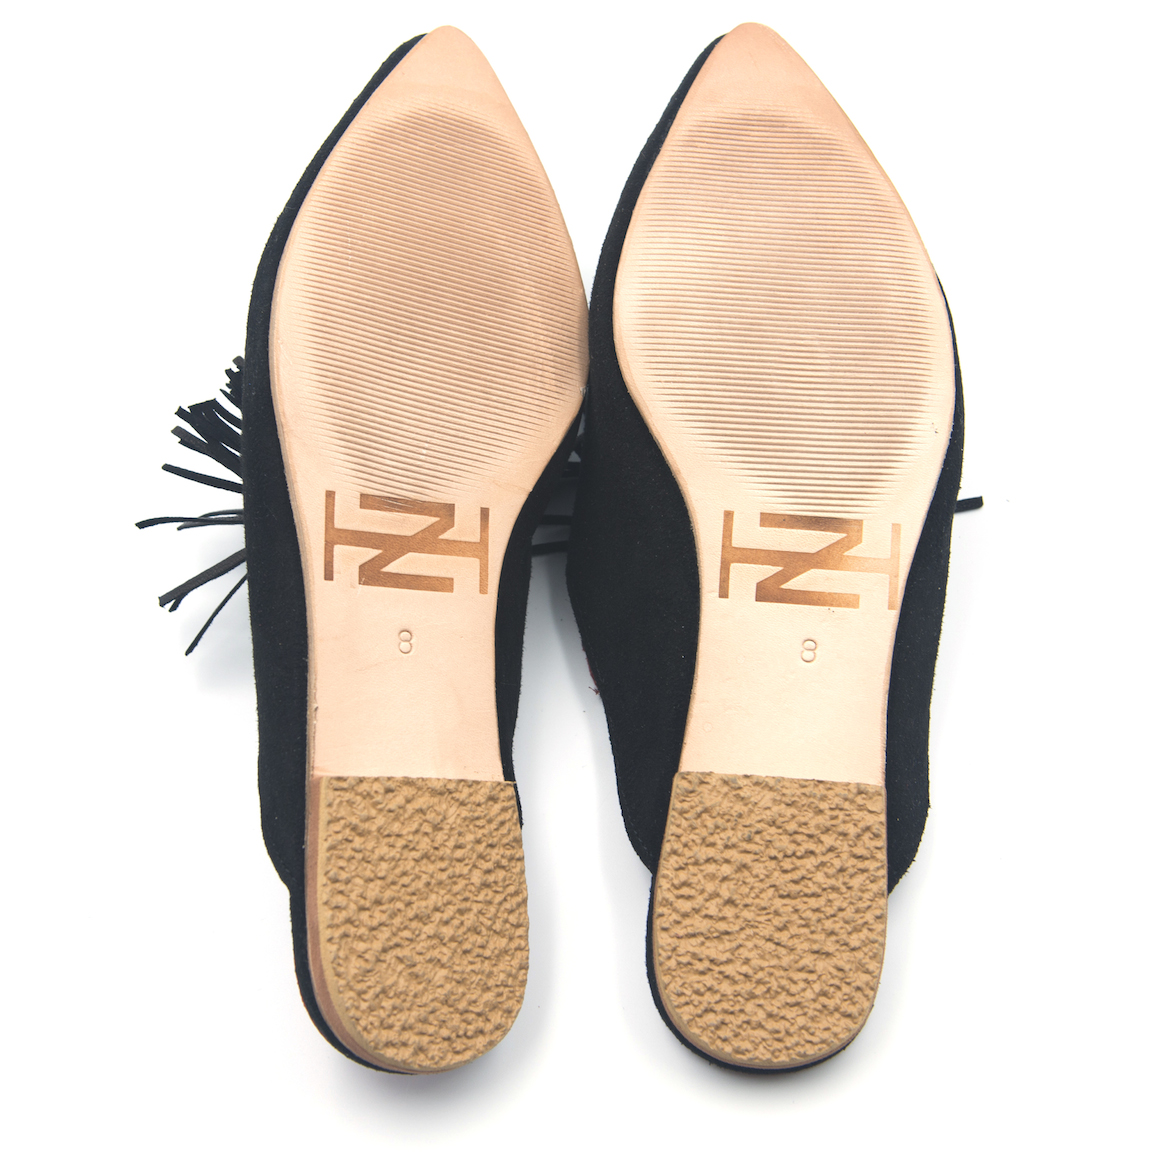 The Wardrobe Workshop x Zwina Habibi Exclusive Black Suede Tassel Shoes